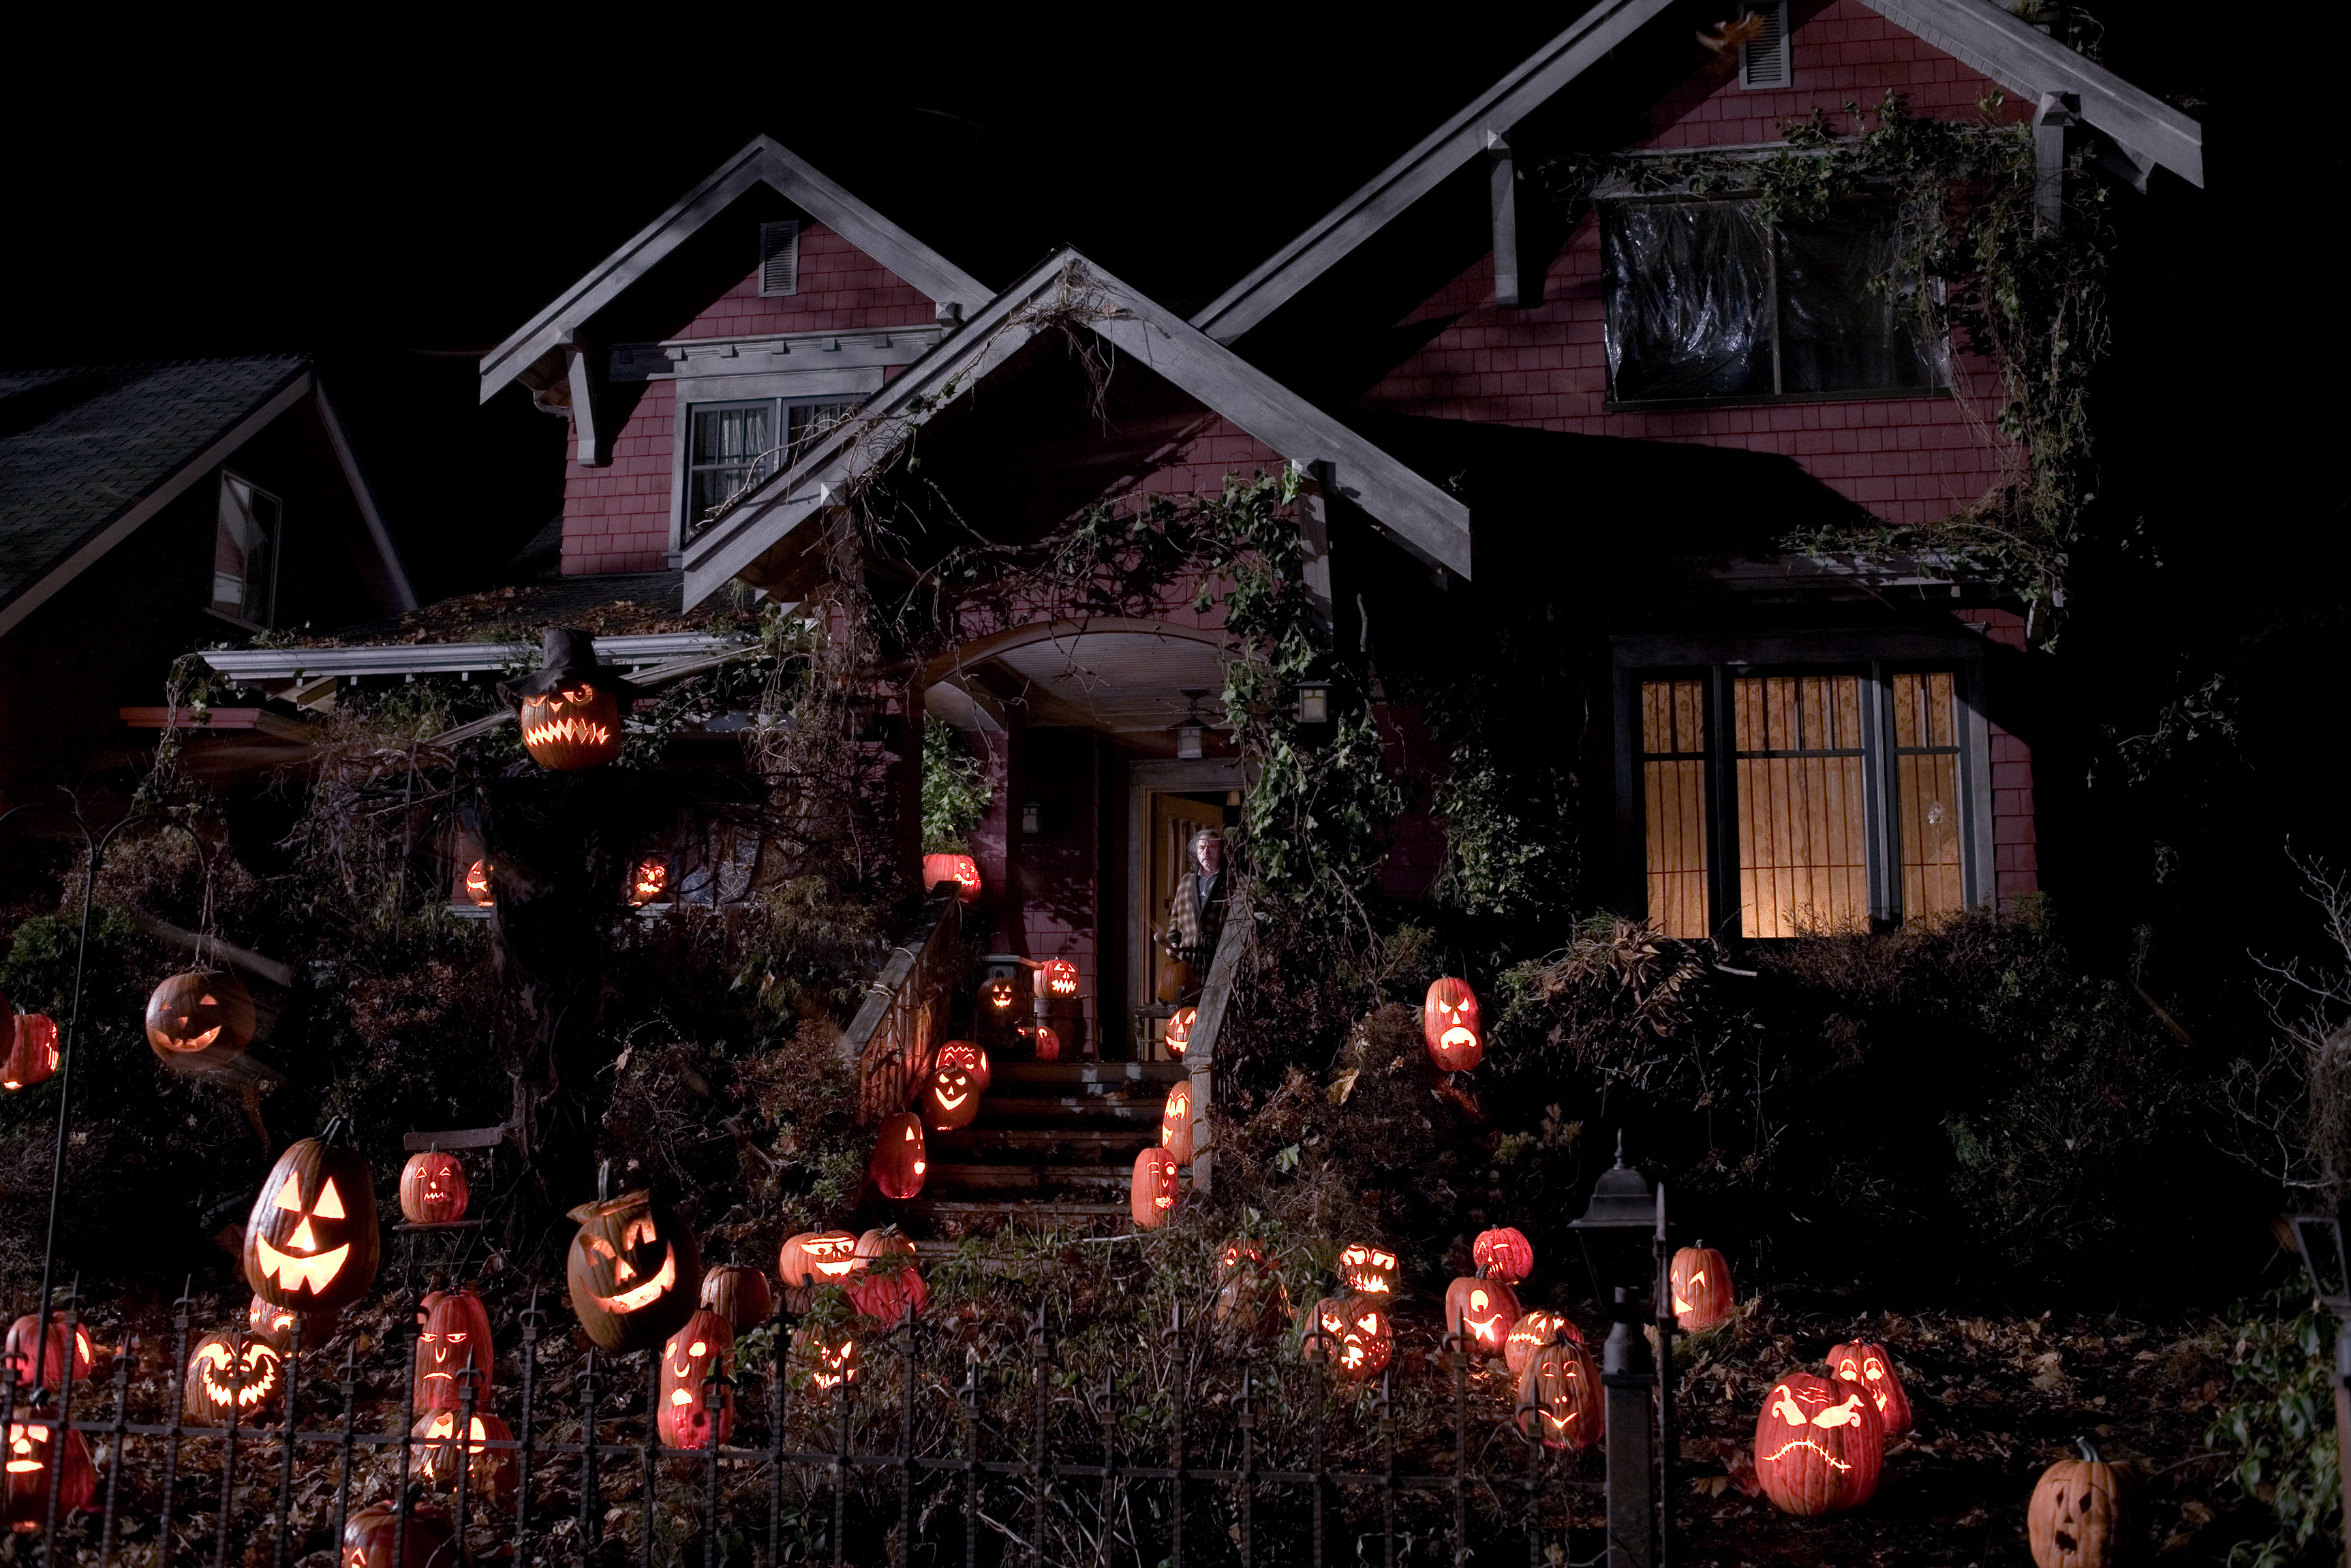 """31-Days-of-Horror-Trick-R-Treat-2007-Five-Tales-of-Terror-Old-Mans-House-Covered-in-Pumpkins-Jack-o-Lanterns """"31 Days of Horror"""" Day 31 - Part One: """"Trick 'R Treat"""" (2007) Movies Reviews"""